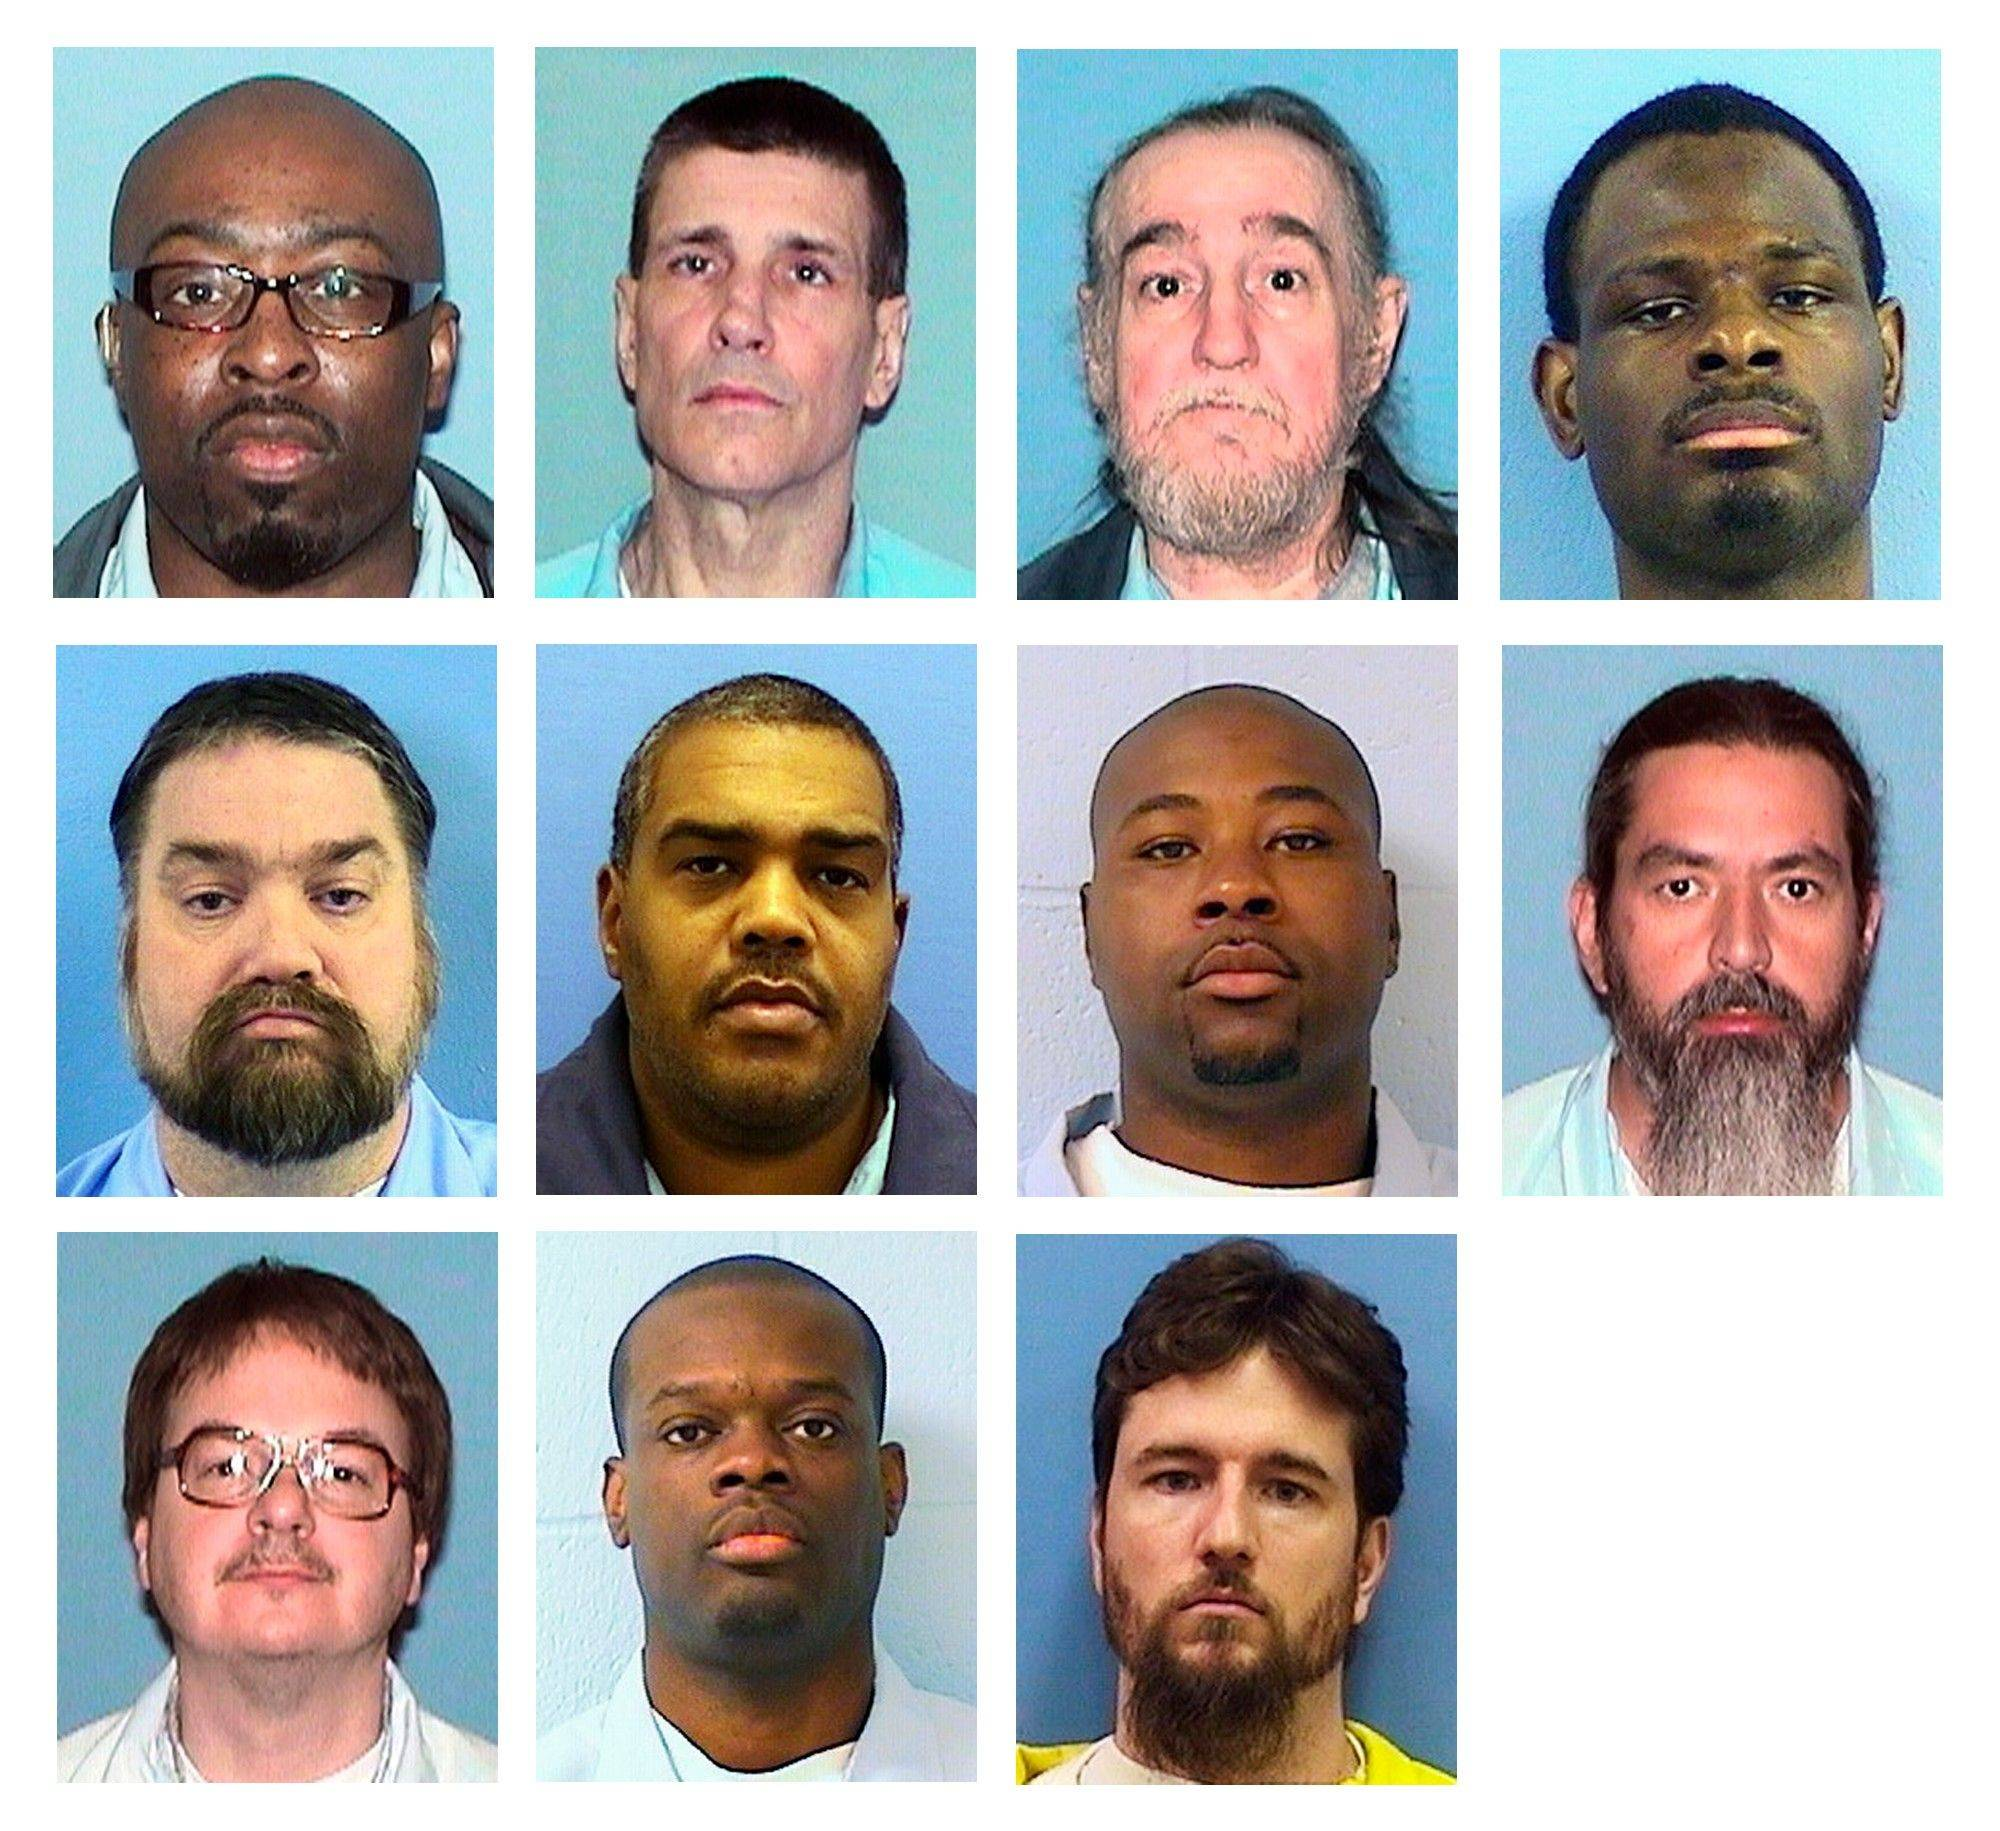 This combination of undated photos provided by the Illinois Department of Corrections shows 11 inmates who are plaintiffs in a class-action lawsuit that was filed Wednesday in Chicago claiming Illinois violates the rights of deaf prisoners by limiting access to interpreters and other assistance behind bars. The inmates are, top from left: Ralph Holmes, 41, Daniel Baxter, 57, George Childress, 60, Hannibal Eason, 28; middle from left: Curtis Foster, 46, Curtis Halterman, 40, Billy Johnson, 28, Wendell Lancaster, 37; bottom from left, Daniel Lord, 44, Aaron Winfert, 31, and Jason Wright, 32.